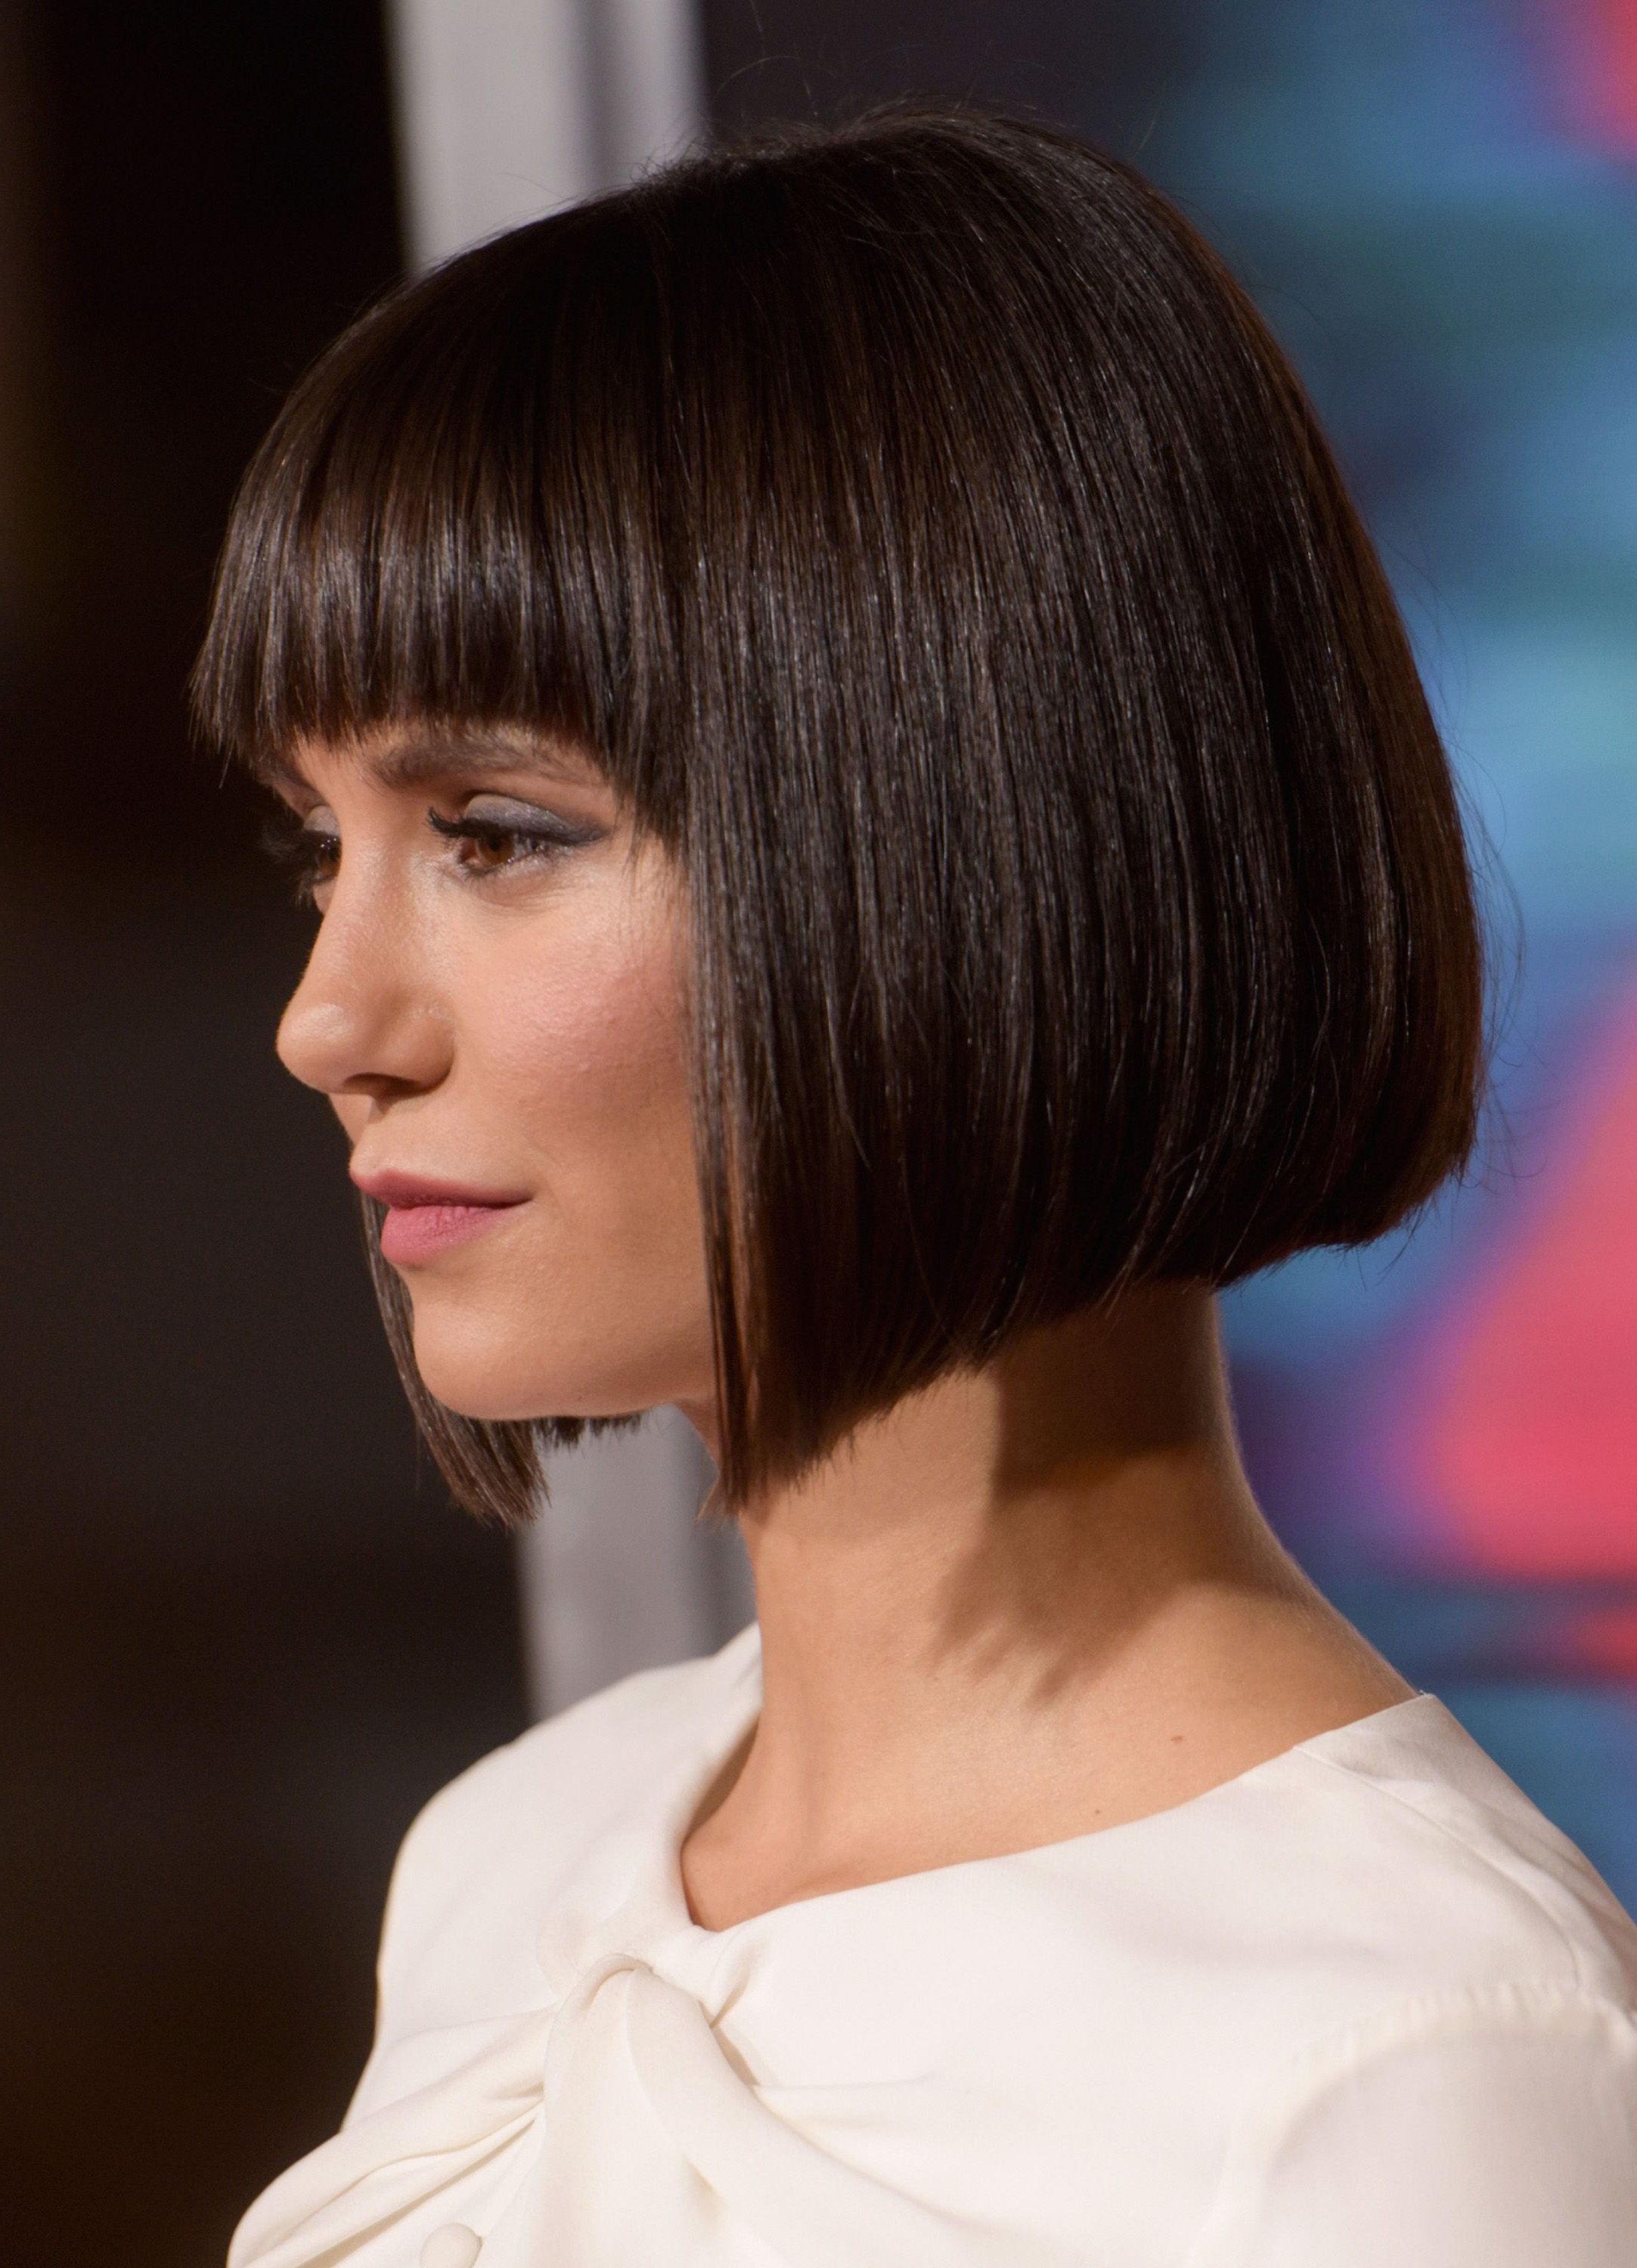 50 Best Bob Styles Of 2018 – Bob Haircuts & Hairstyles For Women Pertaining To Most Popular Brunette Feathered Bob Hairstyles With Piece Y Bangs (Gallery 5 of 20)